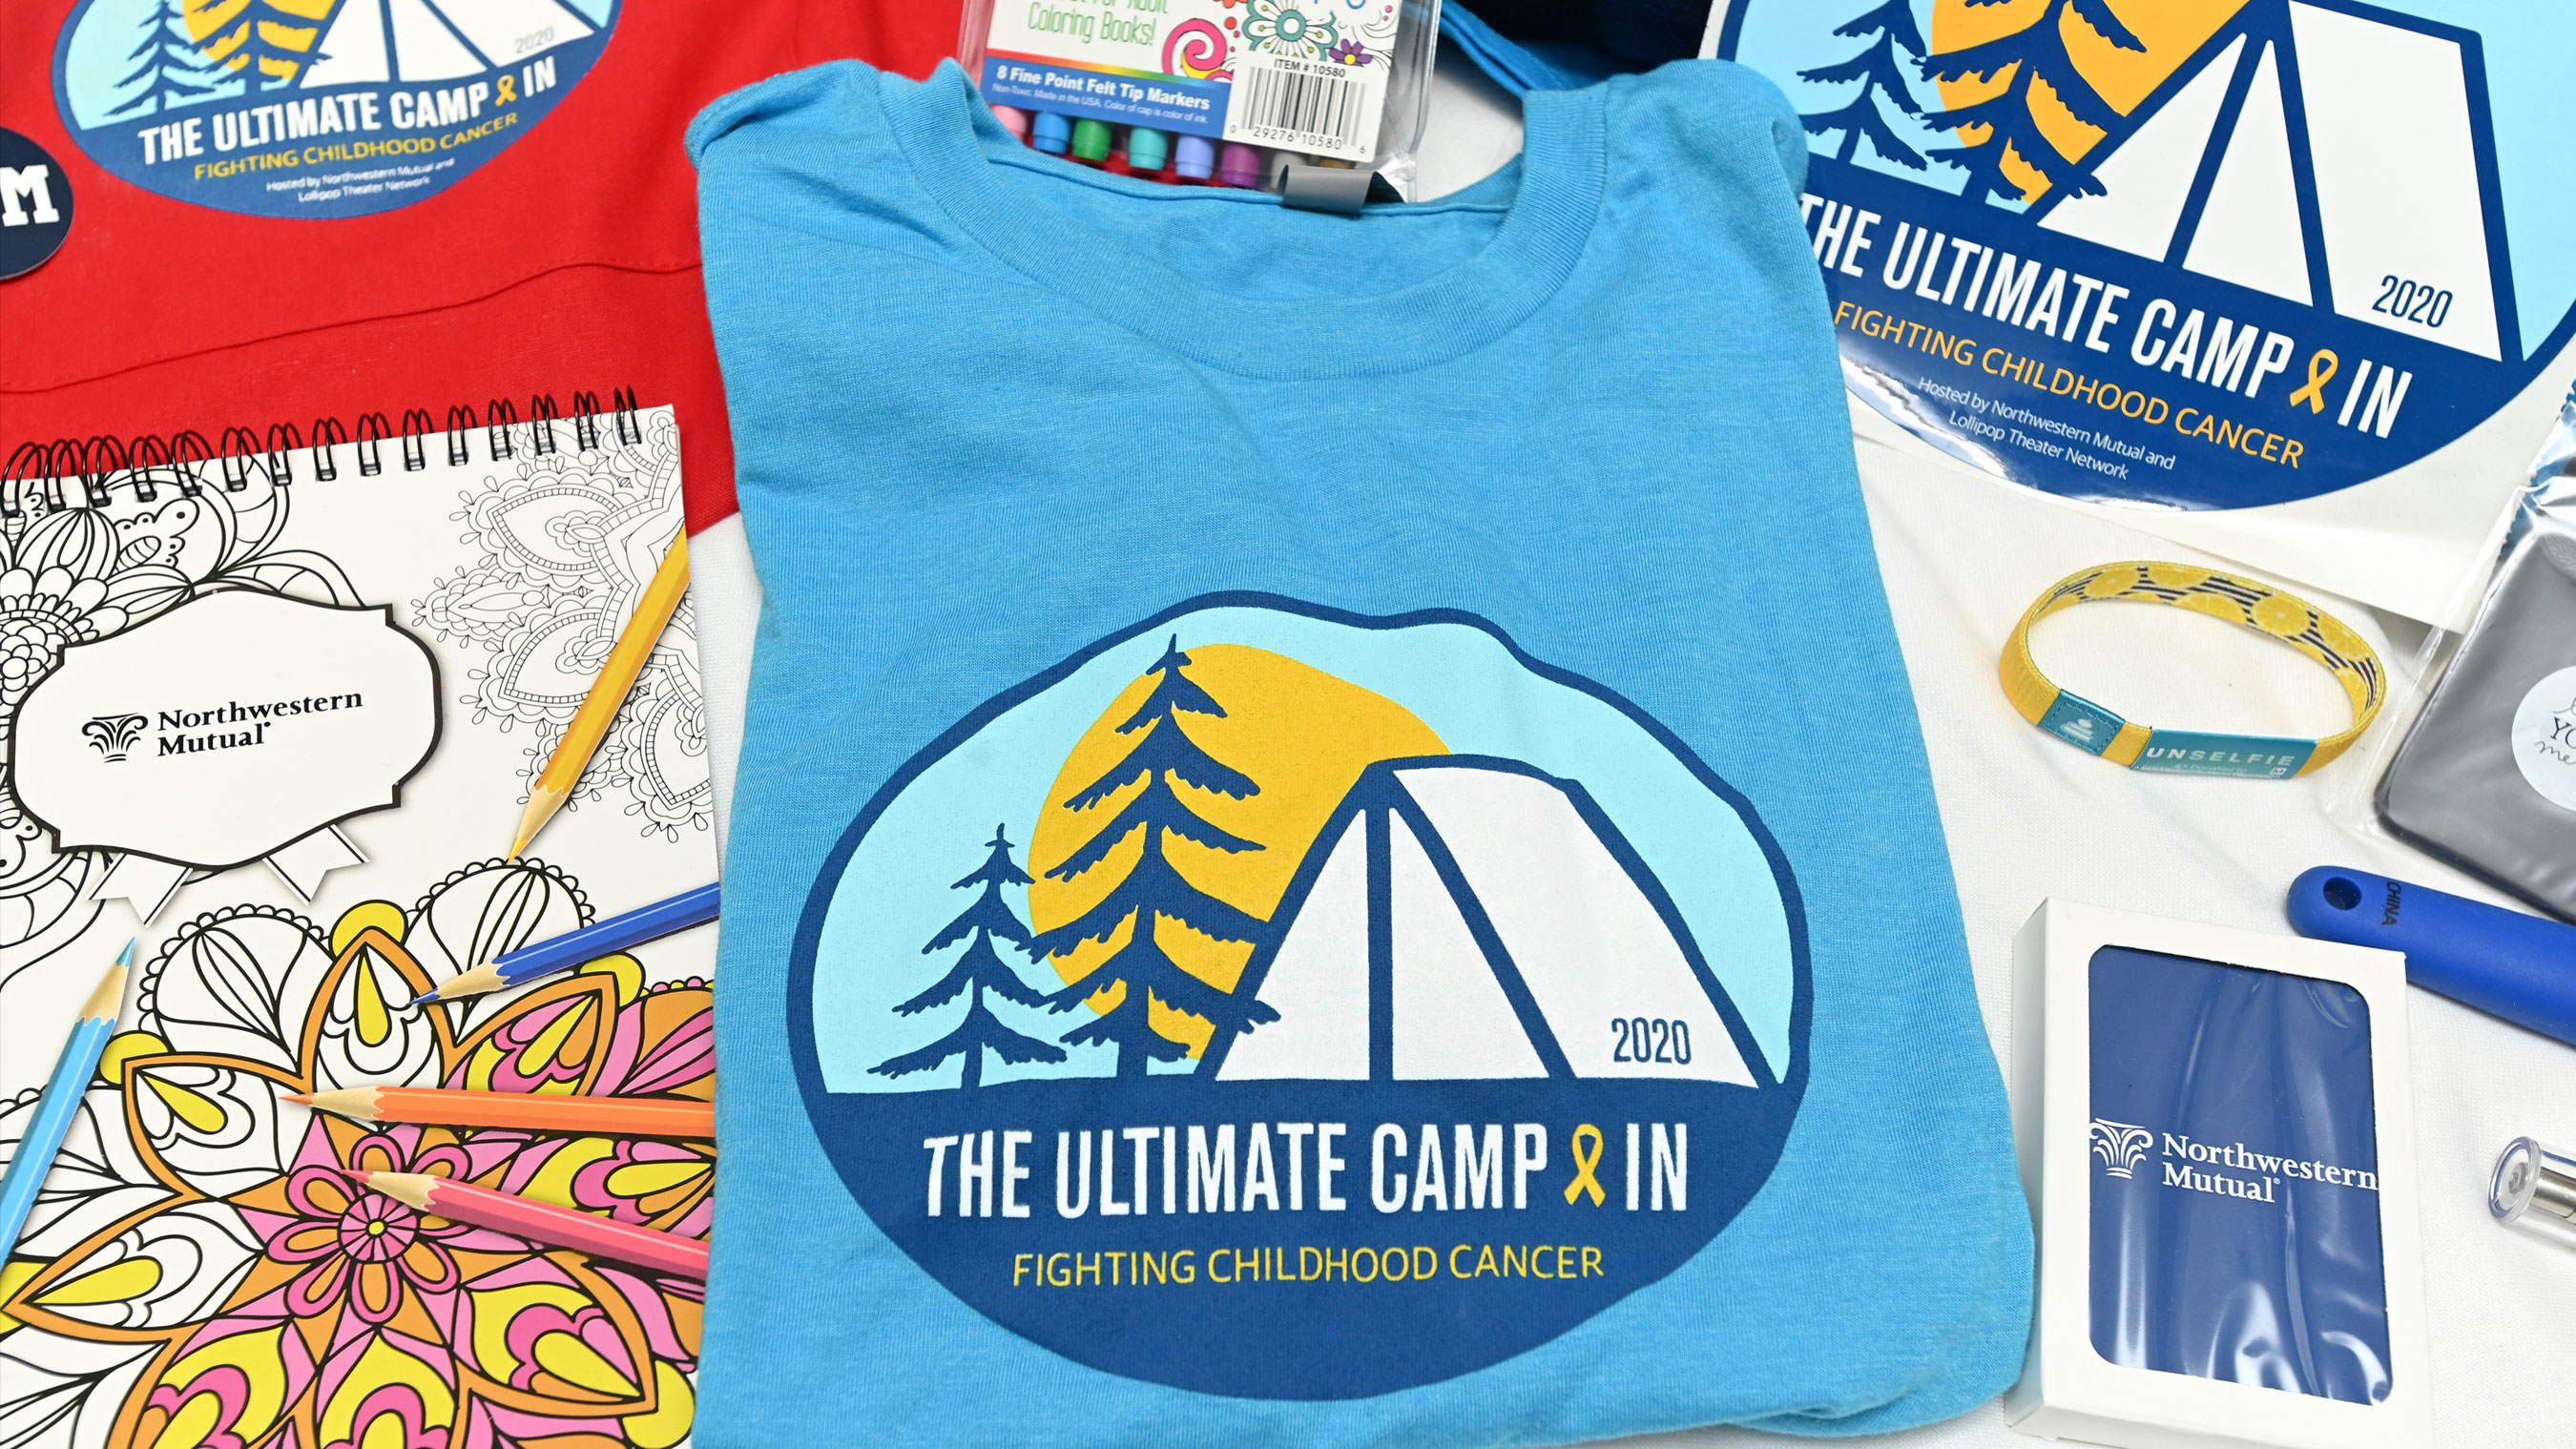 The Ultimate Camp-In, hosted virtually by Northwestern Mutual and Lollipop Theater Network, unites children and families affected by childhood cancer through a magical world of fun, complete with games and learning, special surprises and celebrity appearances on Saturday, August 29, 2020. (PHOTO CREDIT GETTY ENTERTAINMENT)